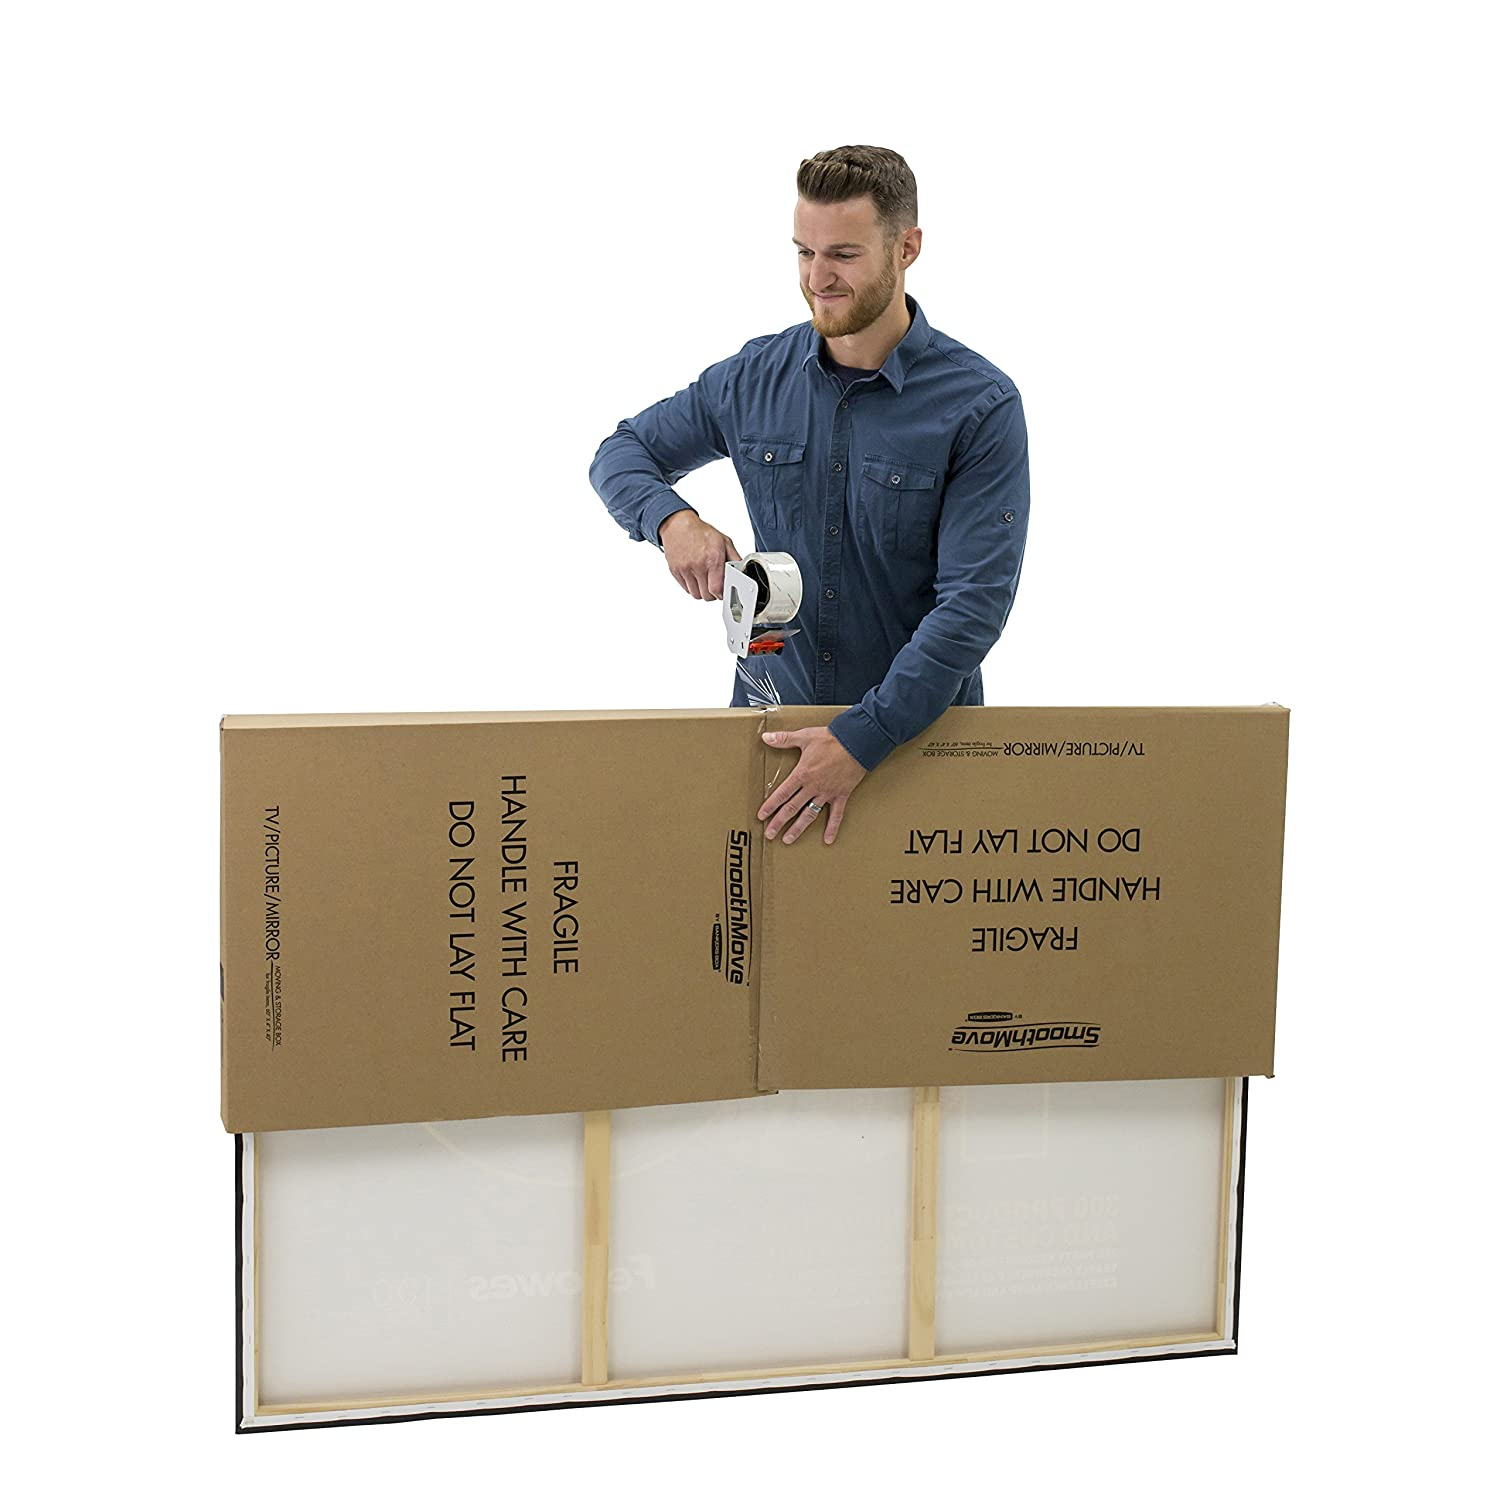 7711401 40 x 60 x 4 Inches 3 Pack Adjustable Bankers Box SmoothMove Picture//Mirror Box